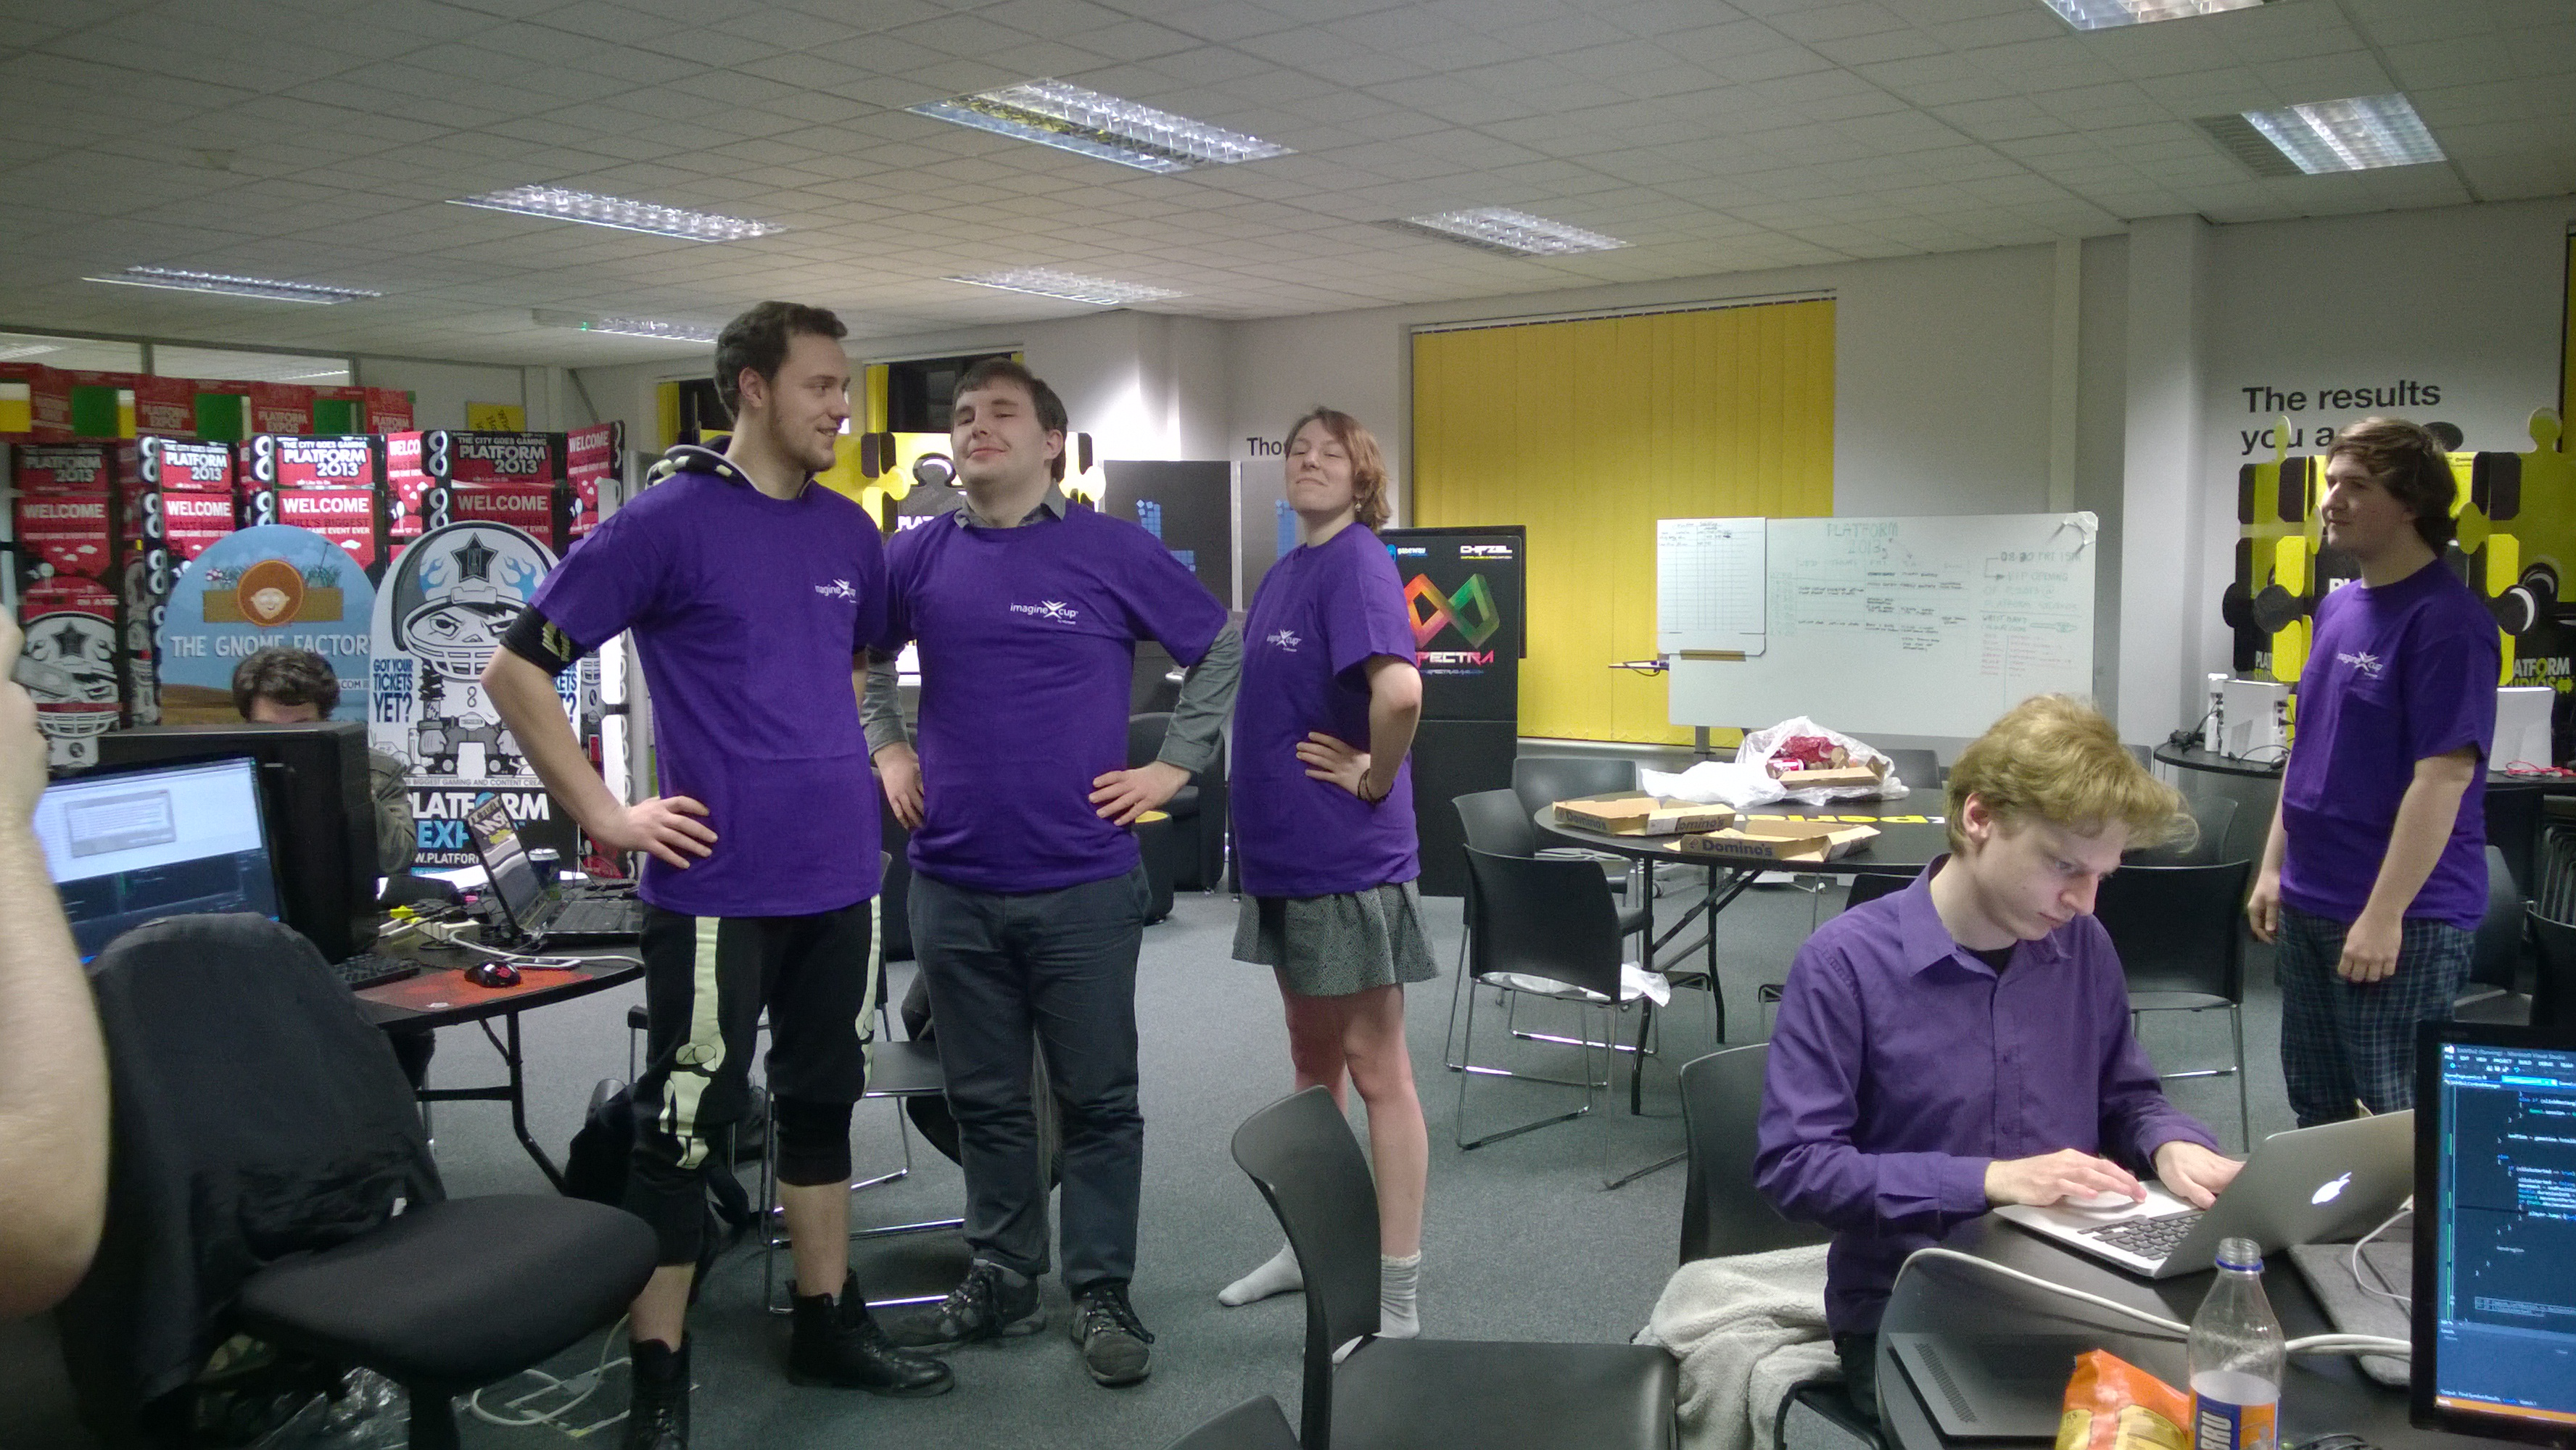 Showing off the amazing Imagine Cup t-shirts